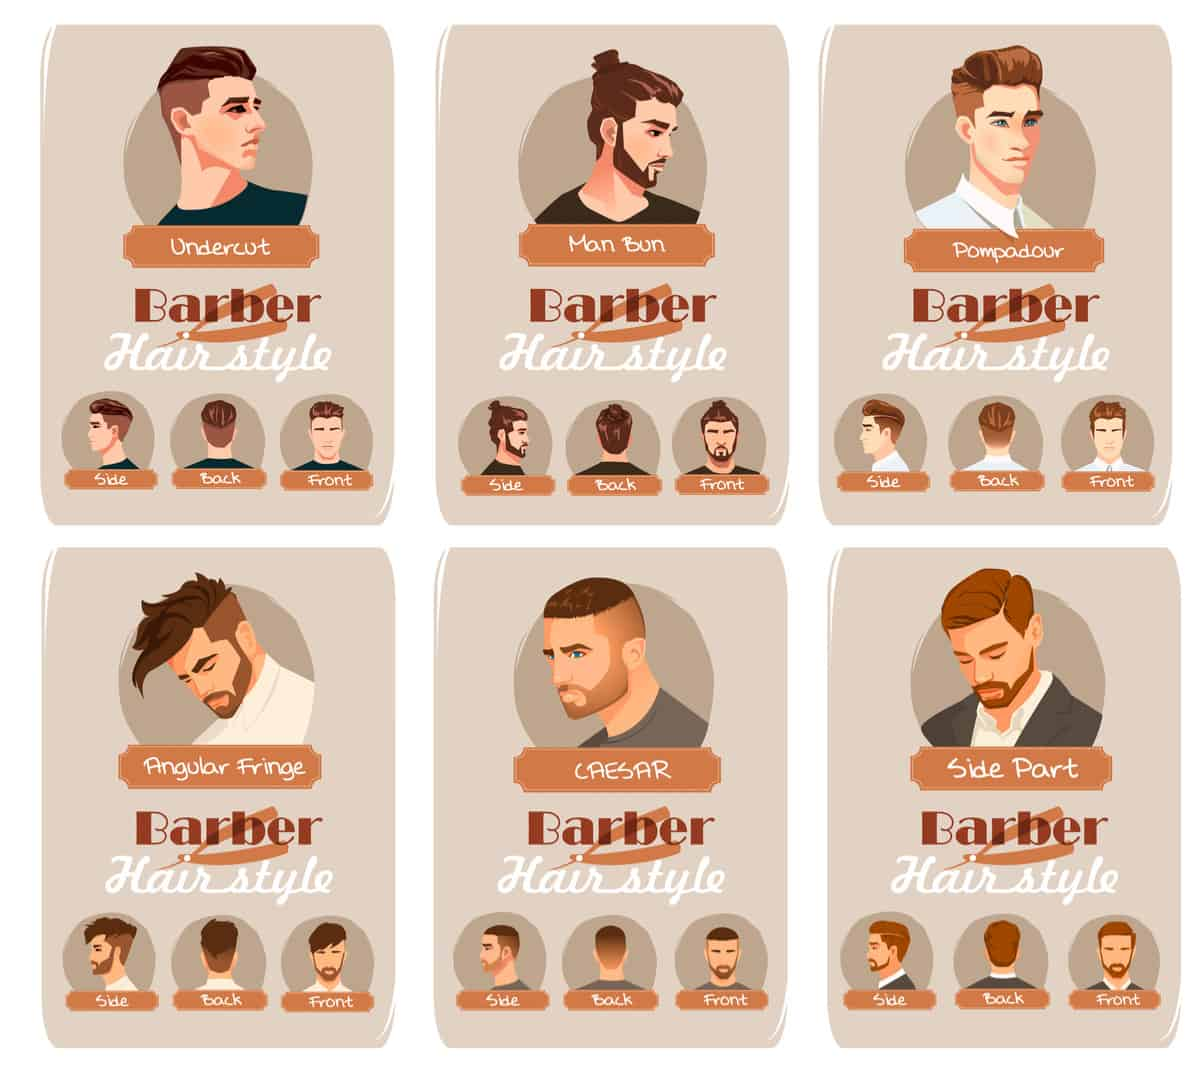 Chart illustrating 6 different men's popular hairstyles and cuts